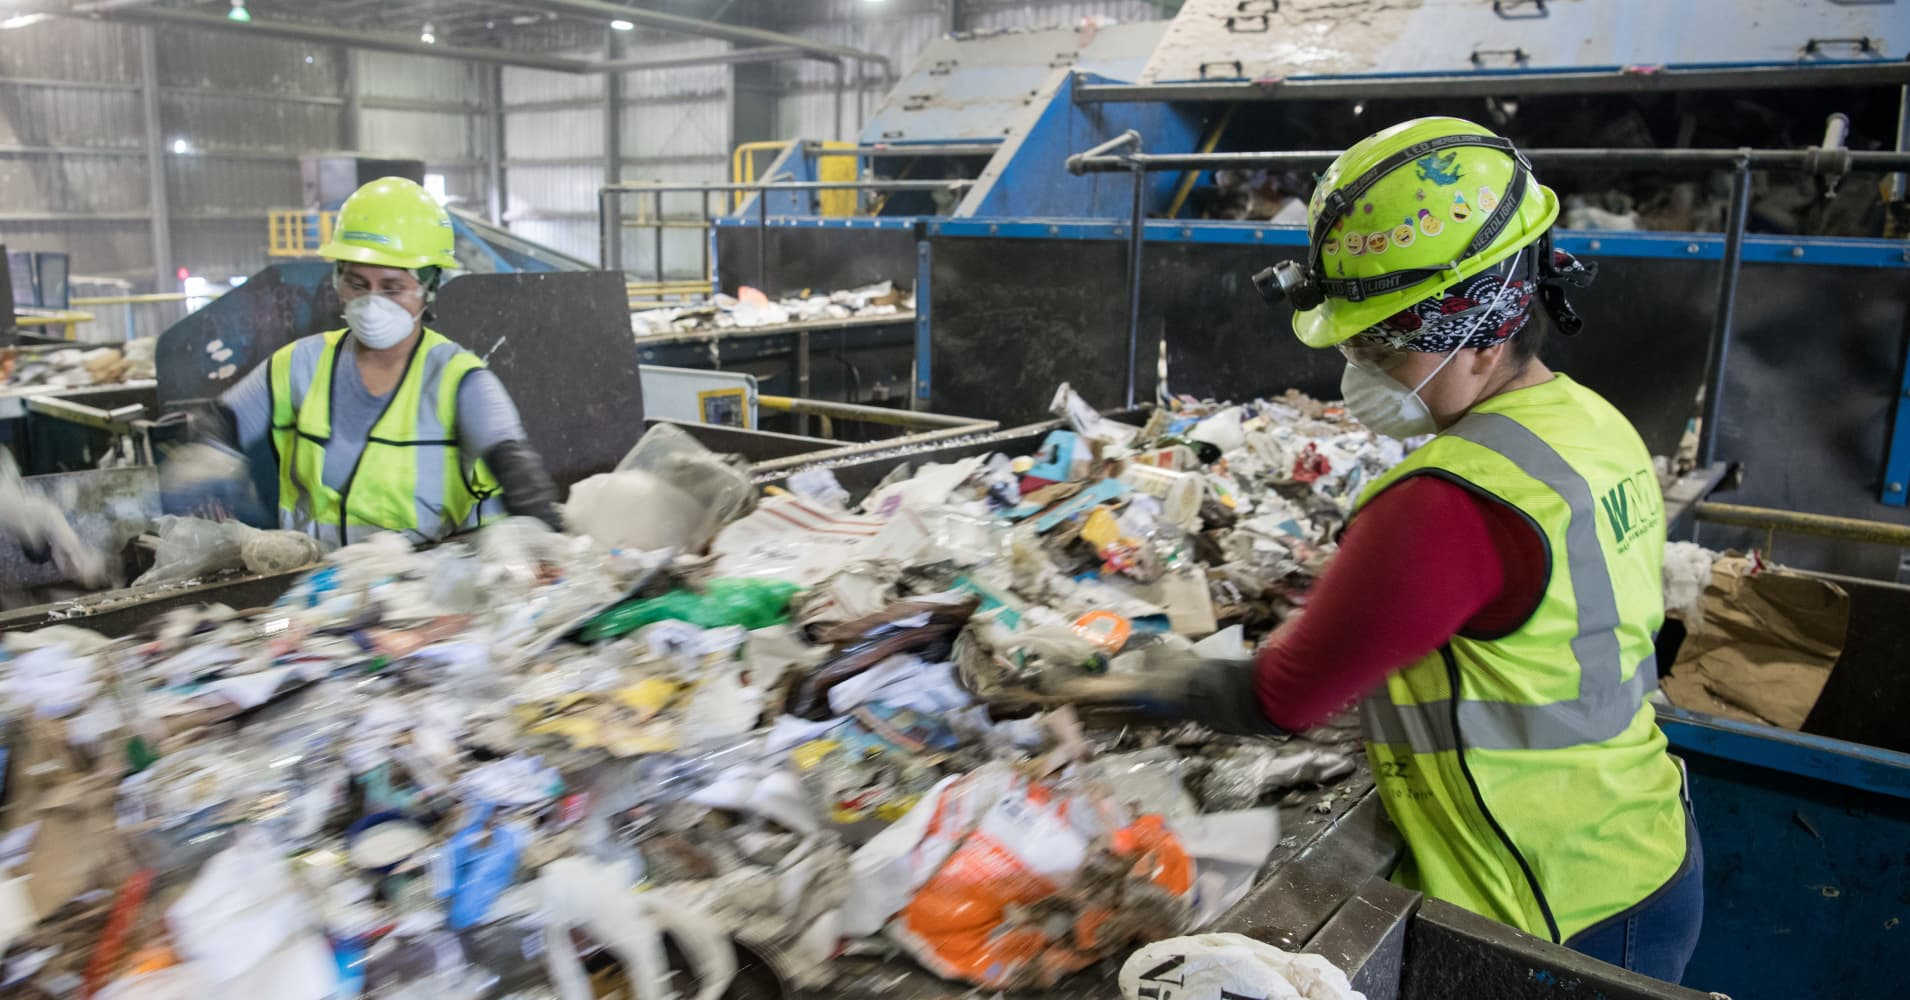 Waste Management to buy Advanced Disposal for about $3 billion in cash